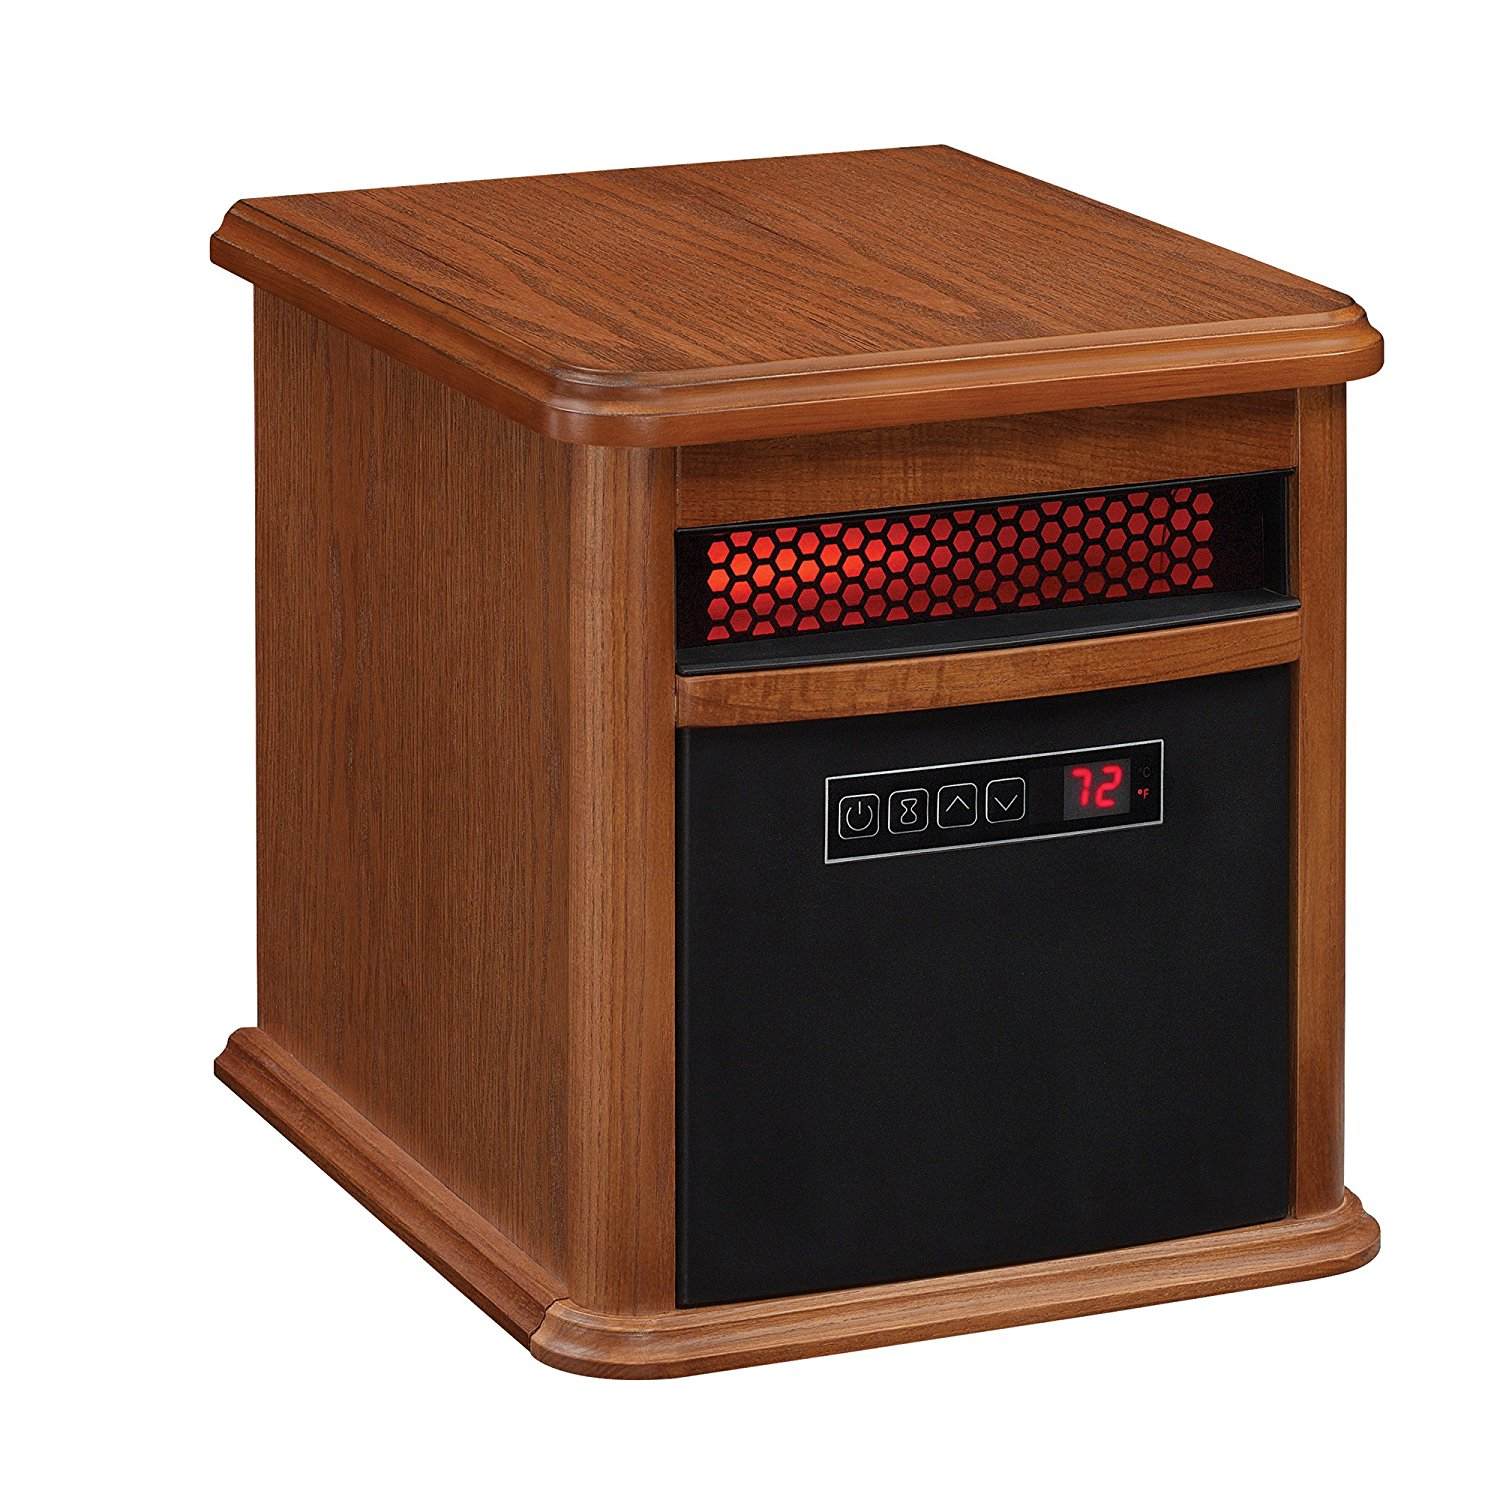 best infrared heaters on the market updated 2017 guide. Black Bedroom Furniture Sets. Home Design Ideas